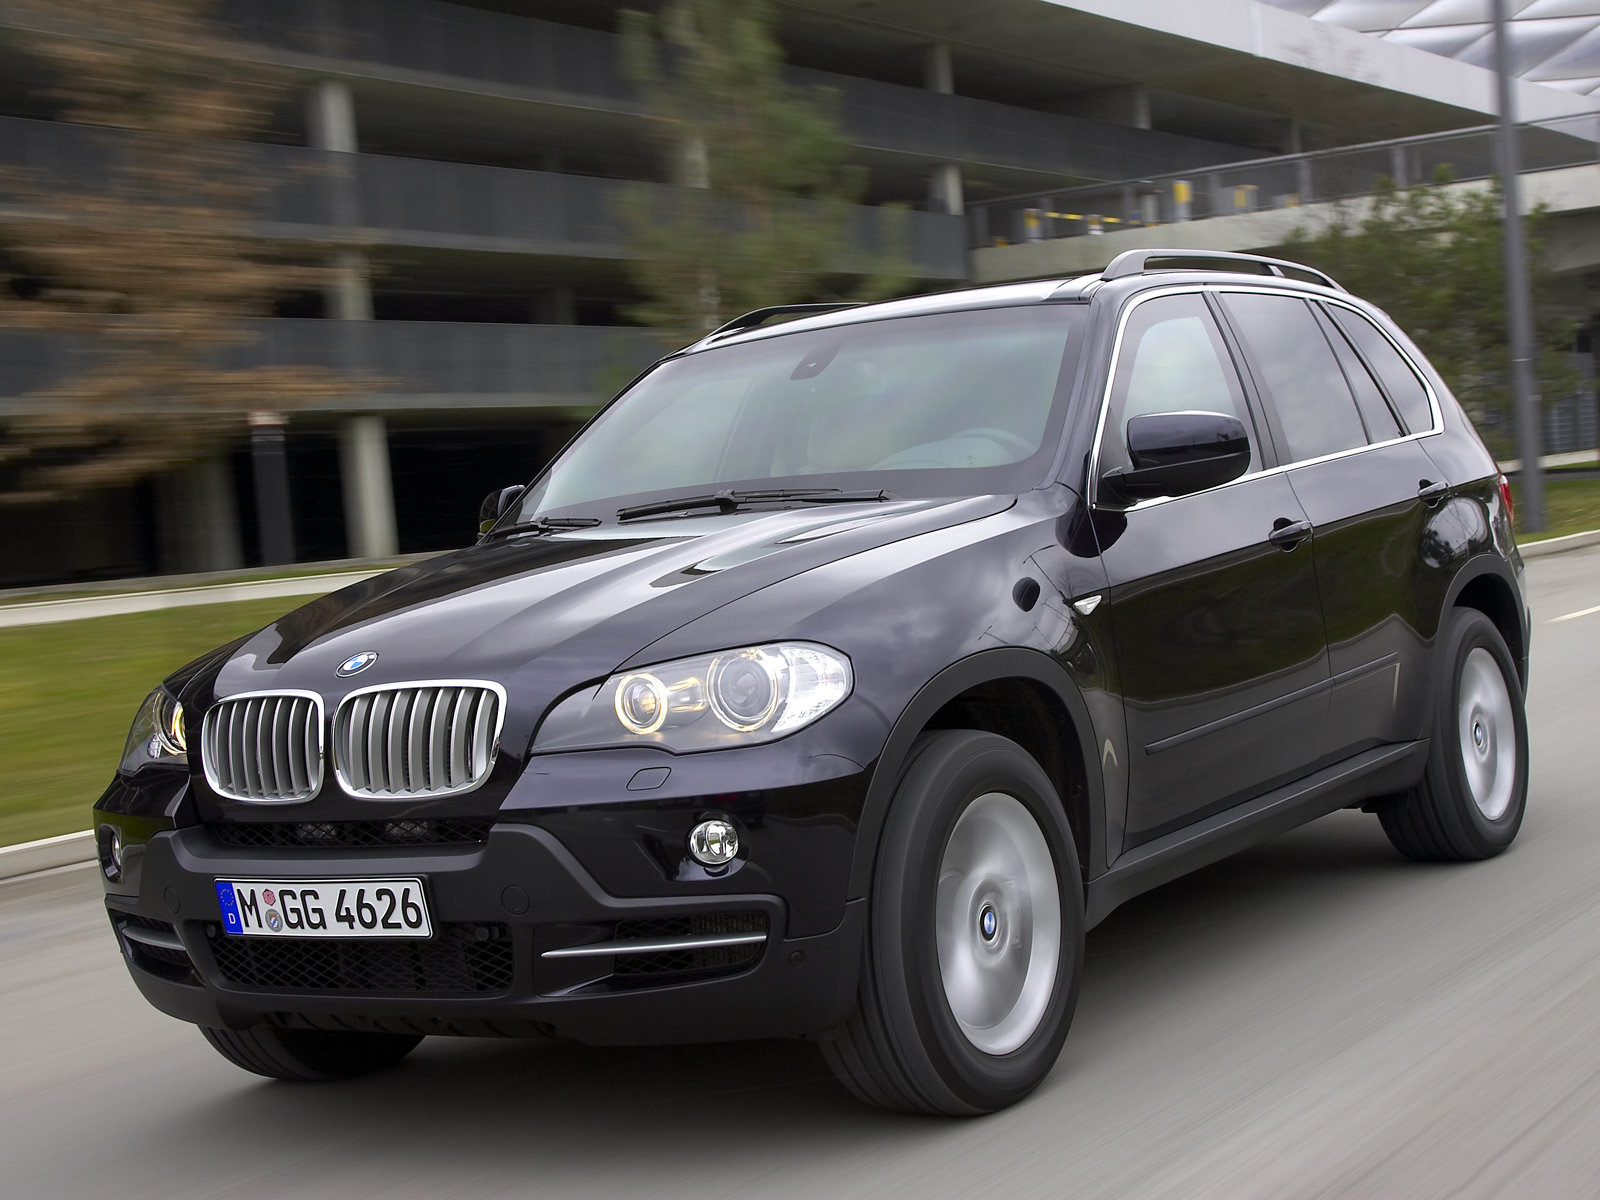 2009 BMW X5 Security Plus car accident lawyers info